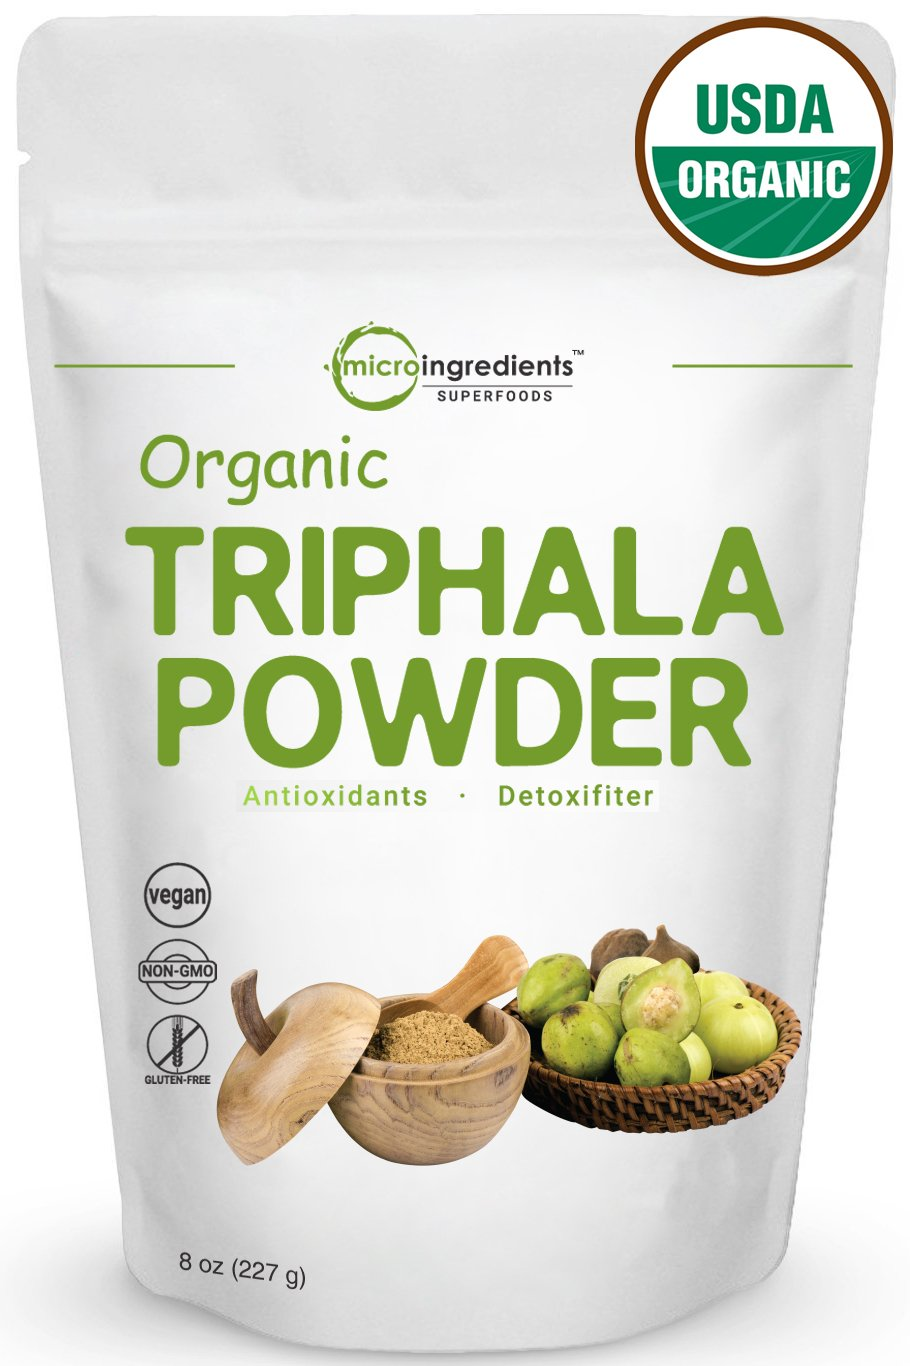 USDA Organic Triphala Powder, 8 Ounce, Strongly Supports Diet Control and Fat Burn, Non-GMO and Vegan Friendly